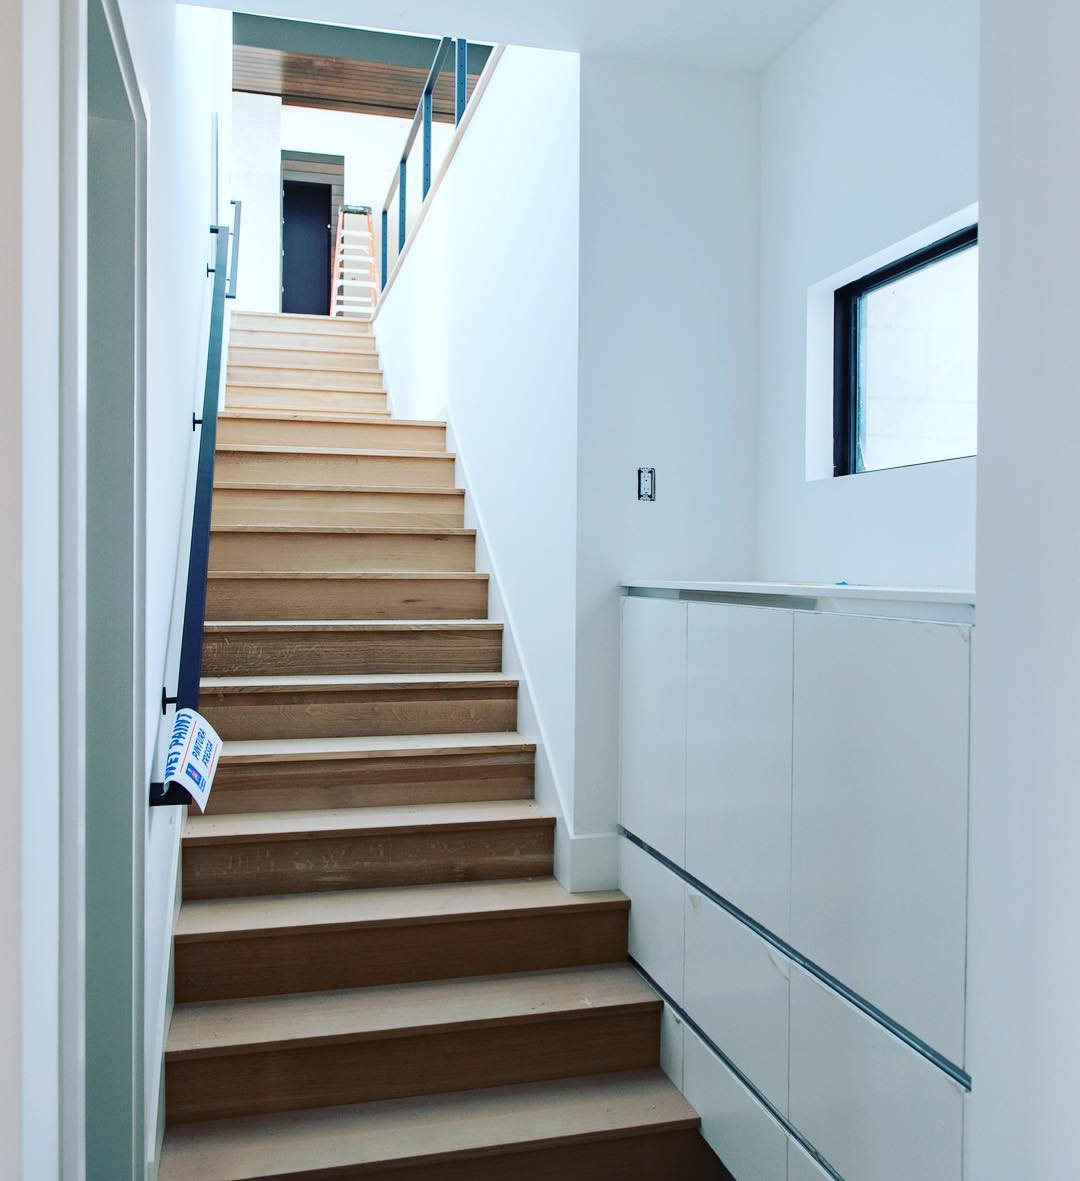 In other parts of the world they would call this basement access. In Texas it's our clients stairway to possibilities!